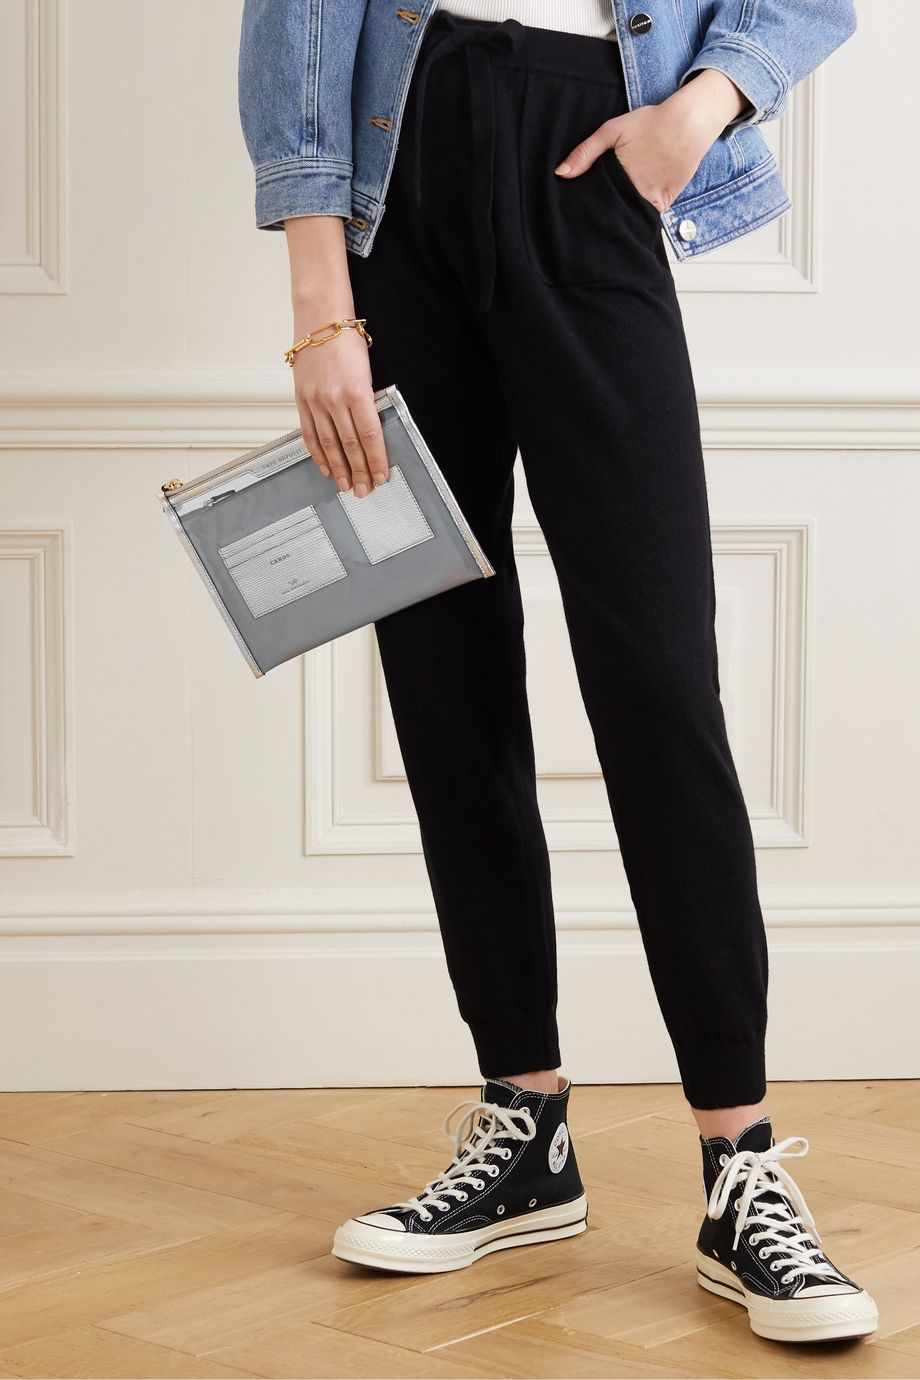 Anya Hindmarch Safe Deposit metallic leather-trimmed PVC pouch